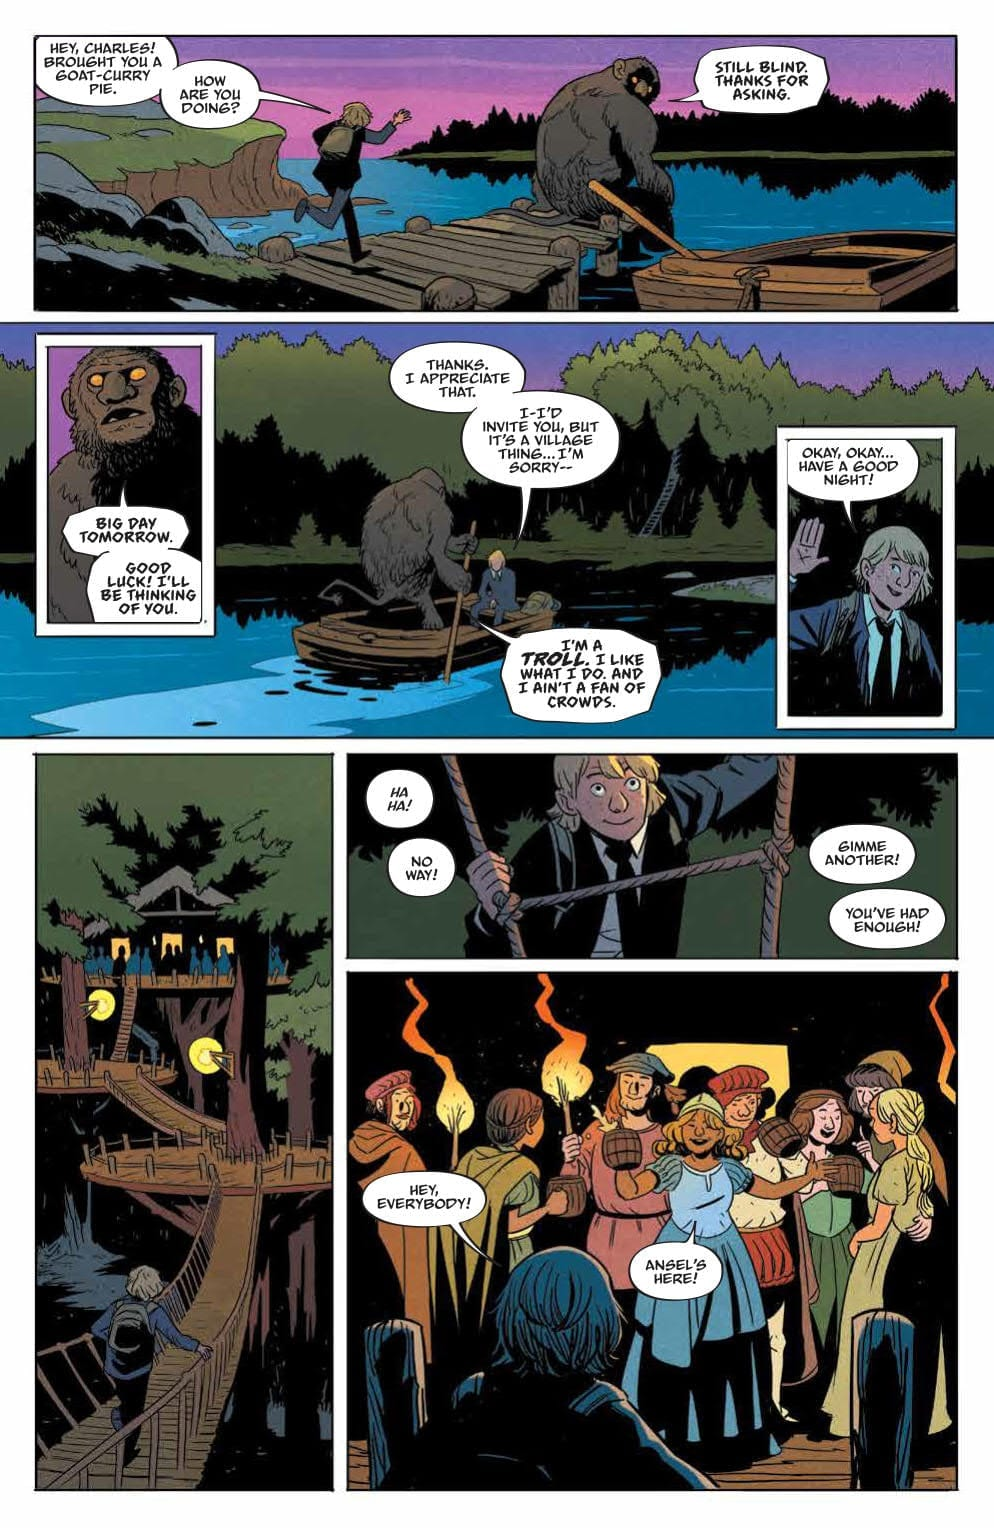 Review: FOLKLORDS #1 (Or How I Learned Earth Is Another World's Fantasy) 3